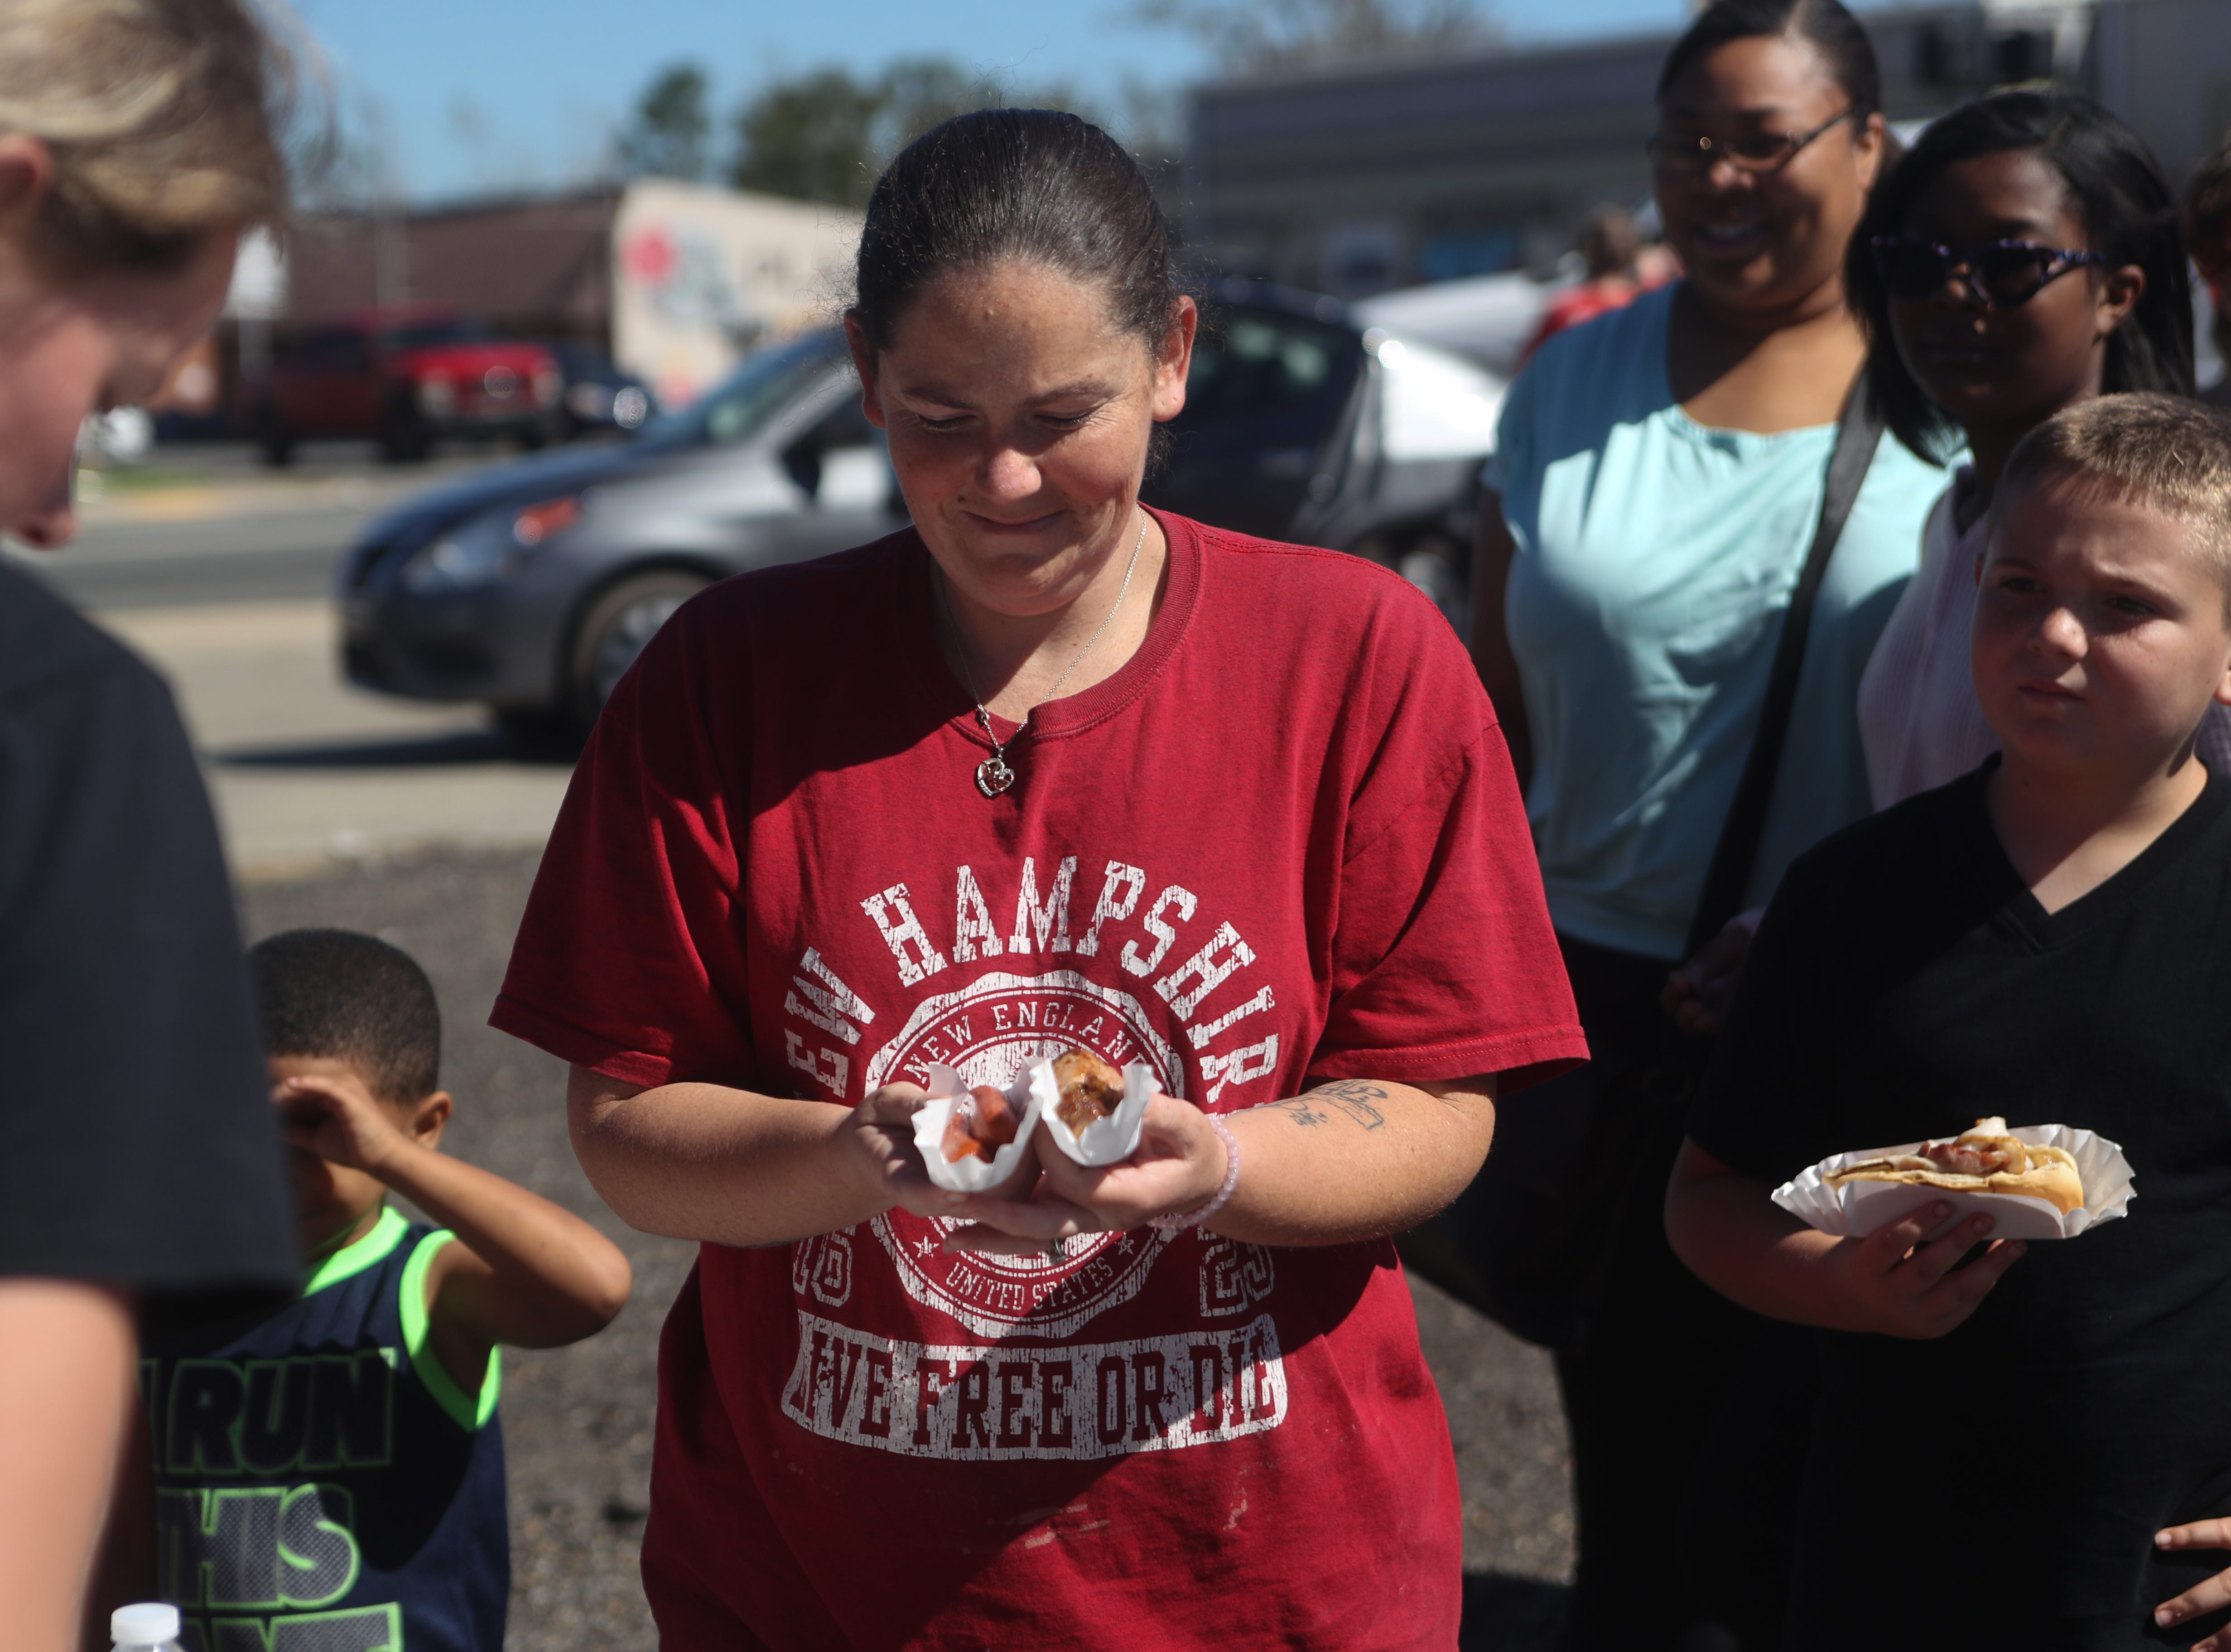 Shanna Russ gets food for herself and her children from Dalton Trucking Inc. in Blountstown, Fla. in the aftermath of Hurricane Michael Friday, Oct. 12, 2018.